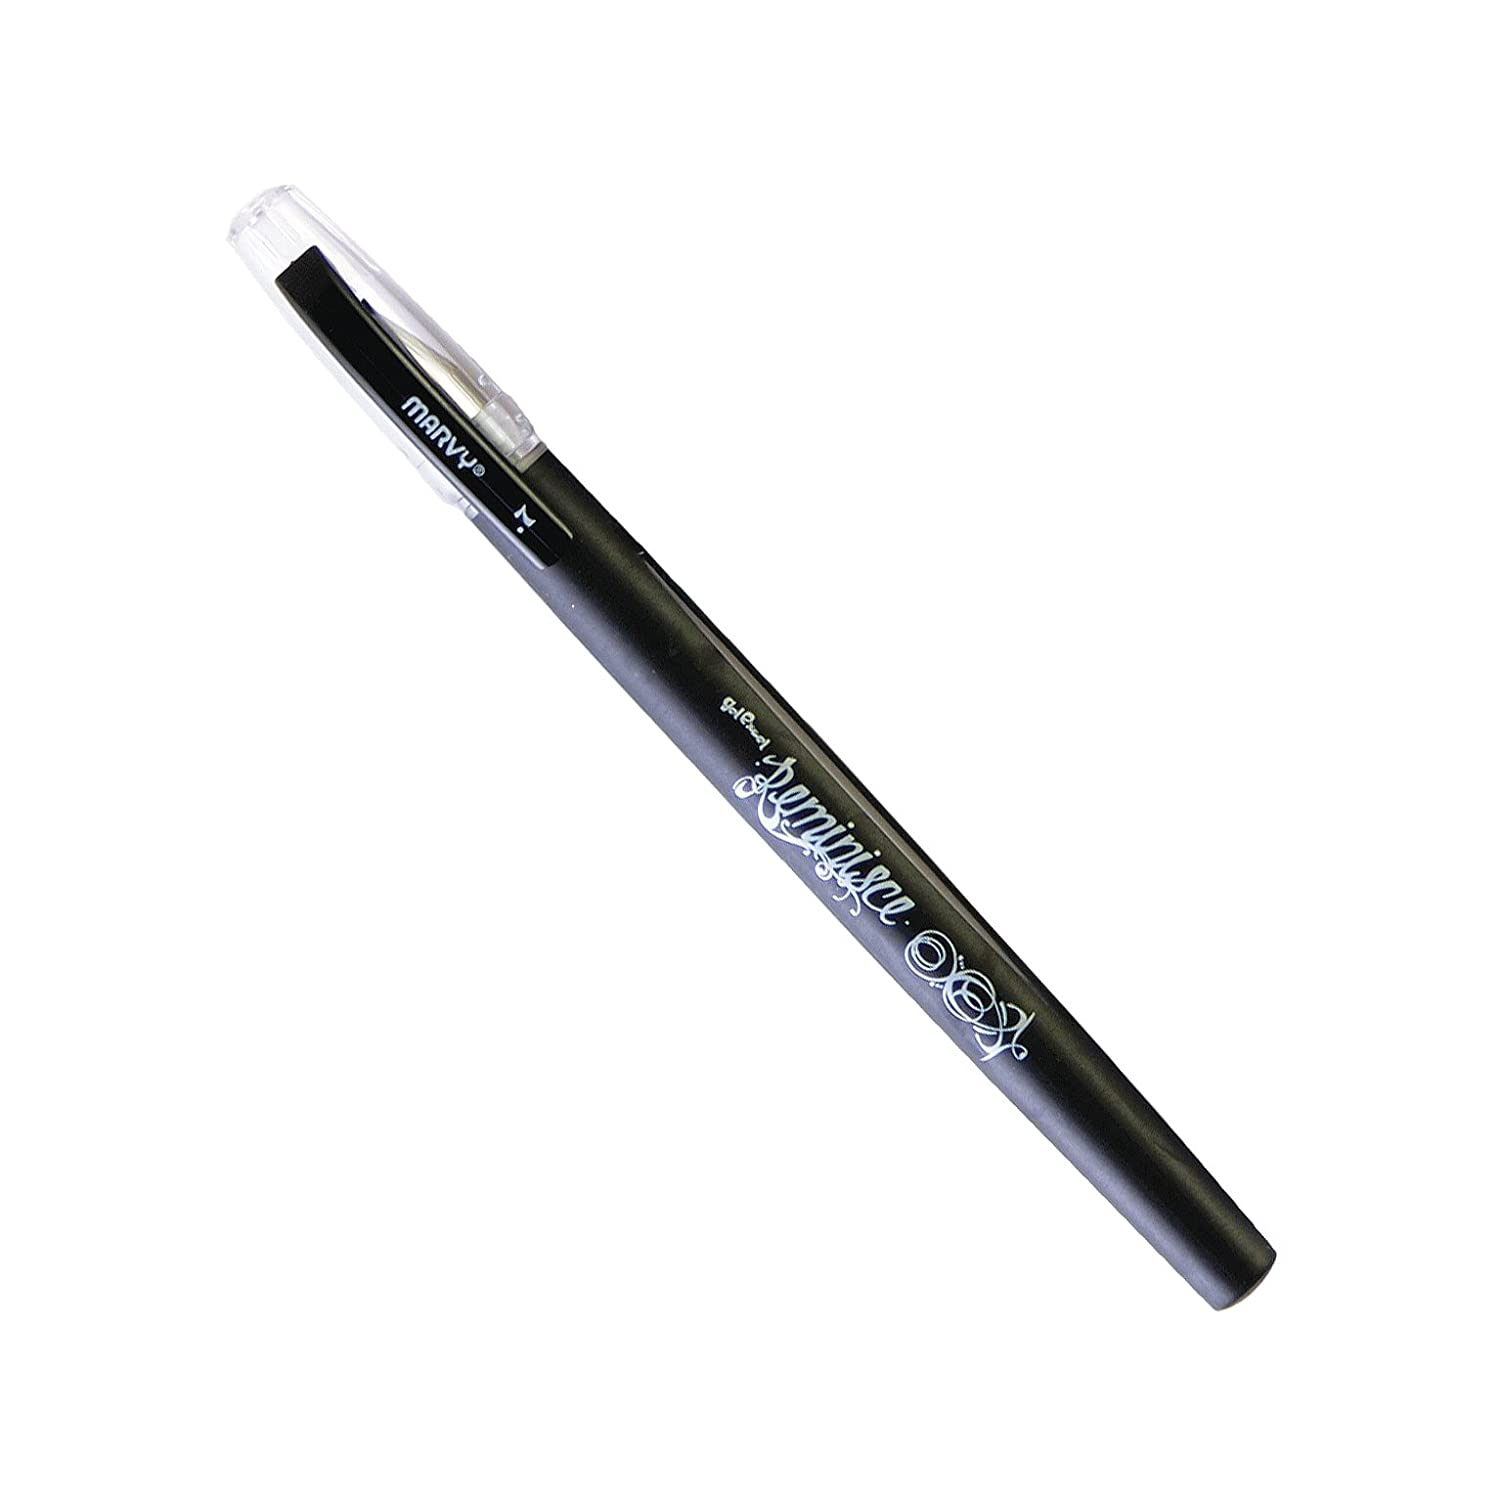 Uchida of America Reminisce Gel Excel Pen, Black